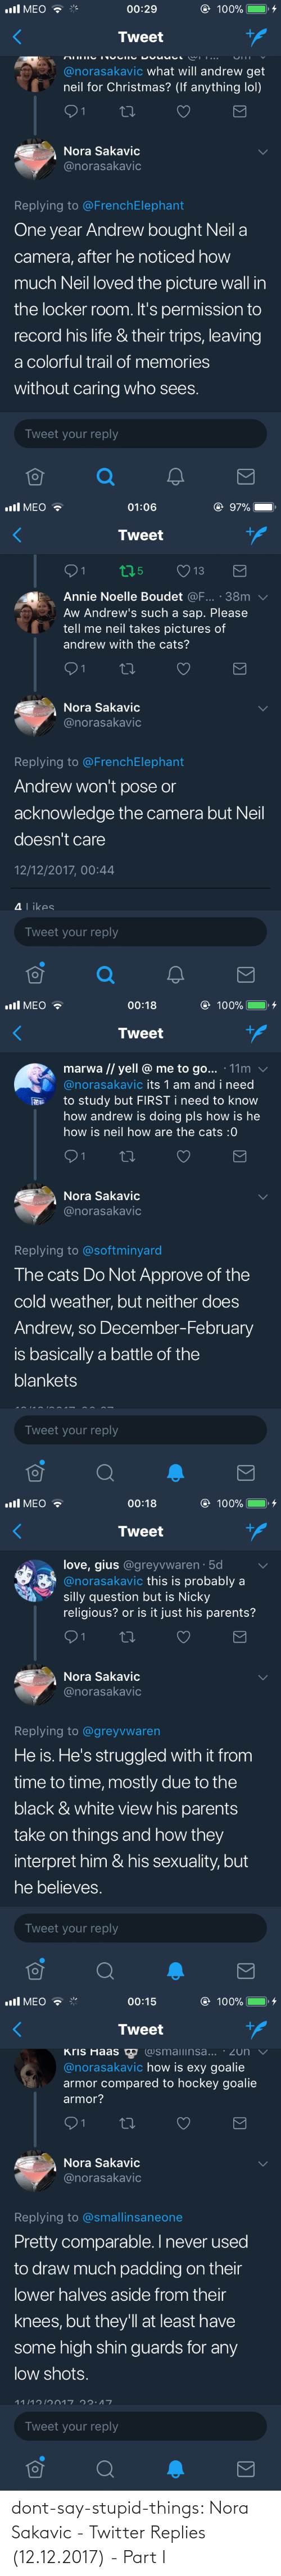 dont: dont-say-stupid-things:  Nora Sakavic - Twitter Replies (12.12.2017) - Part I